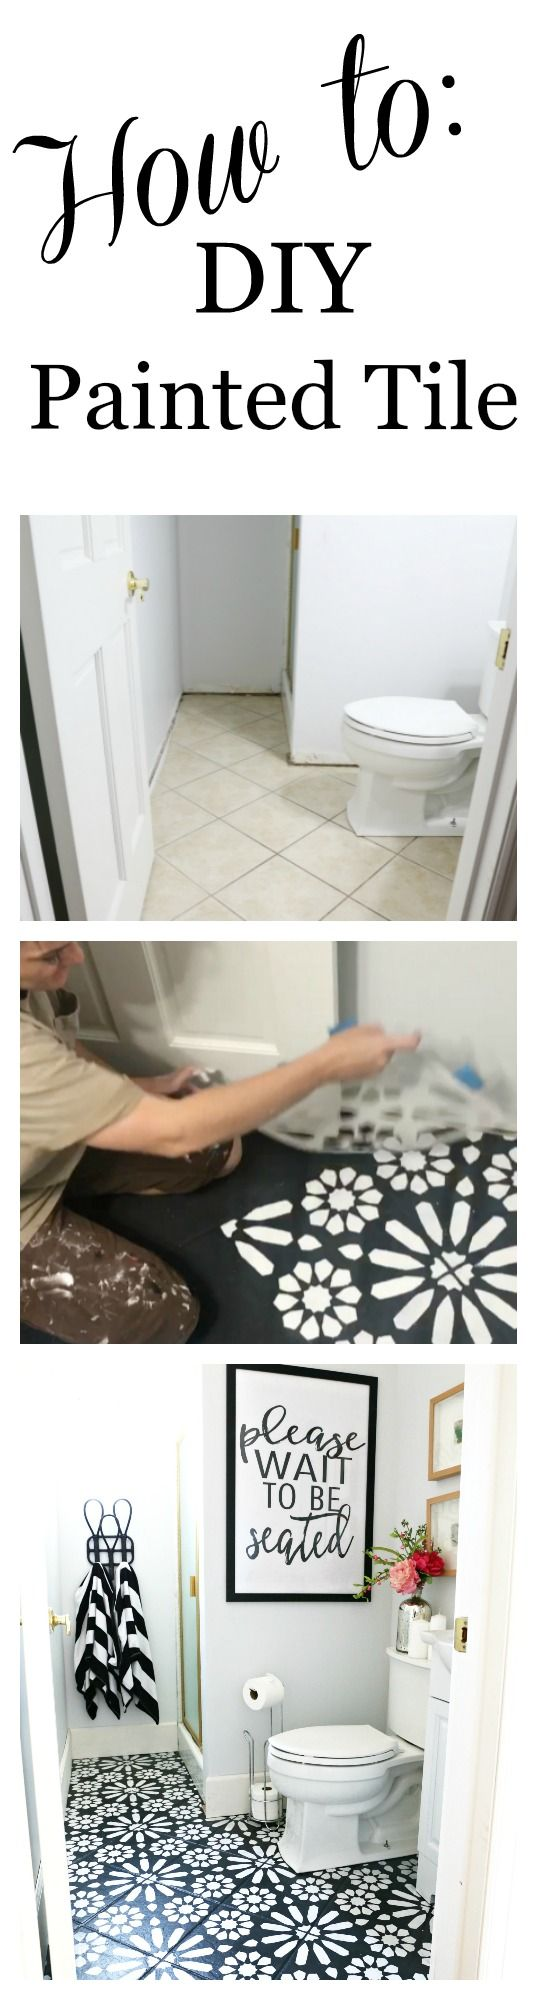 Best 25 painting tile floors ideas on pinterest painting tiles how to diy painted floor tile step by step tutorial on how to paint dailygadgetfo Choice Image